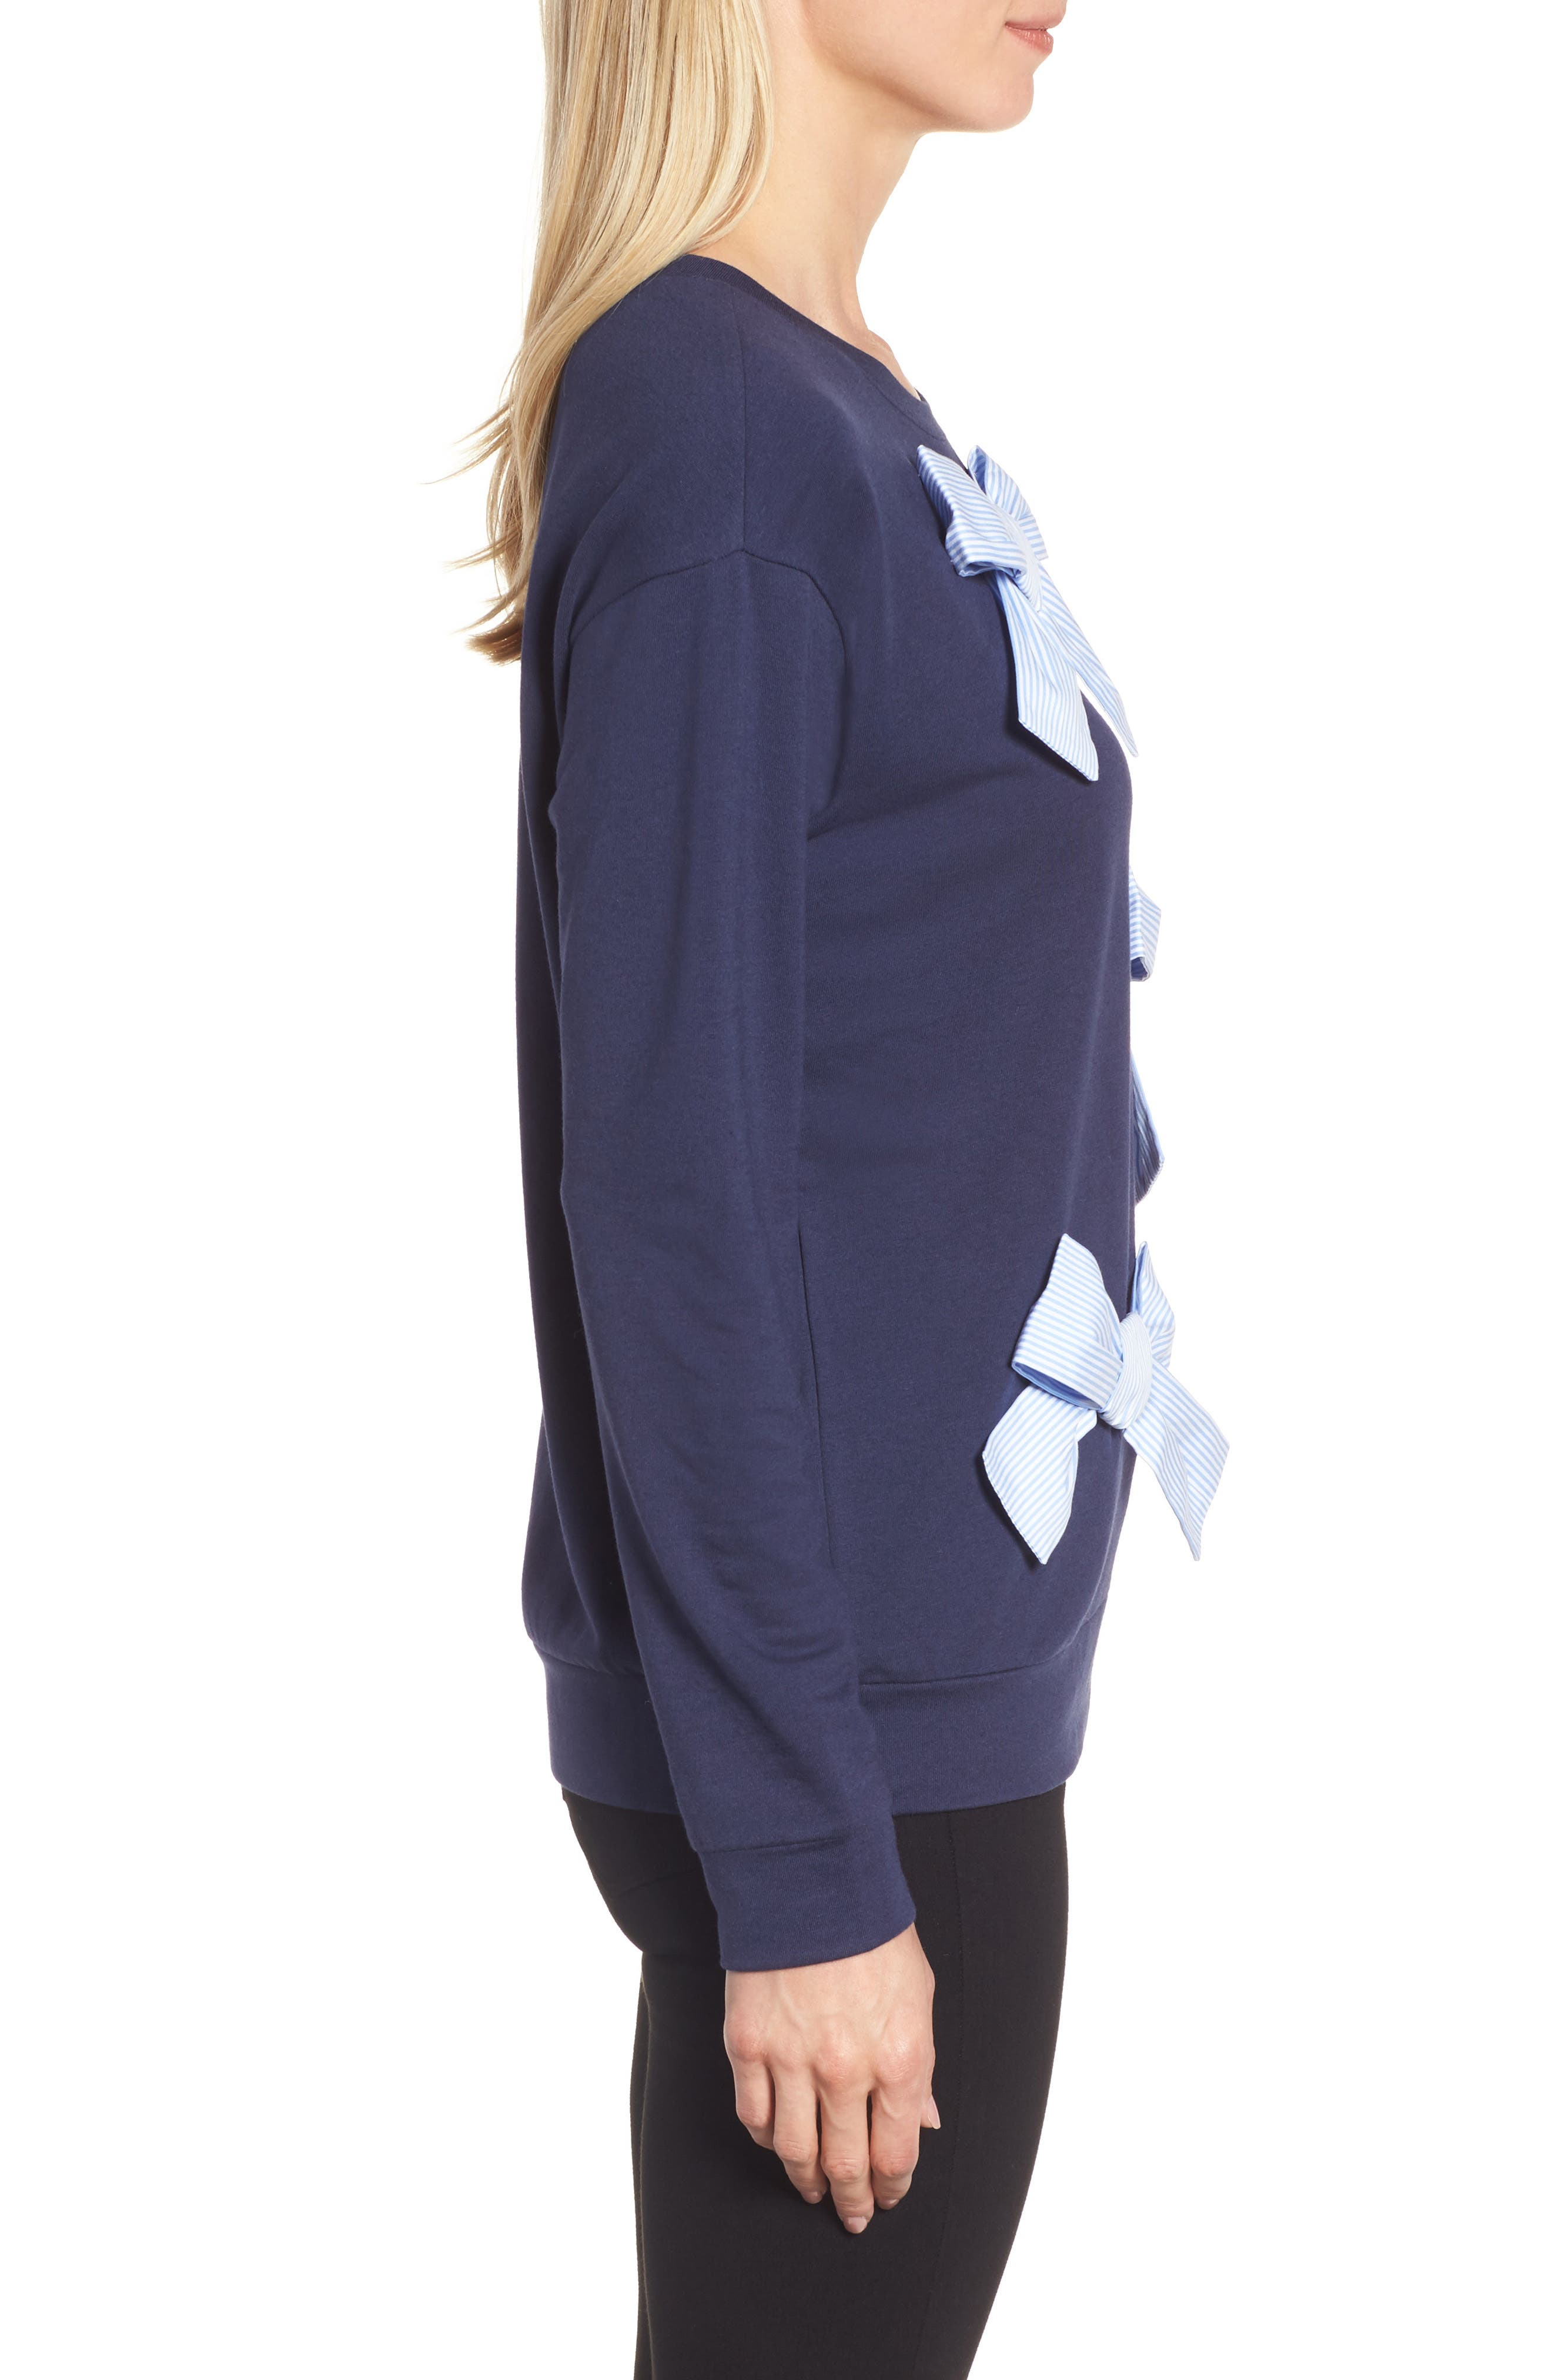 Bow Detail Sweatshirt,                             Alternate thumbnail 4, color,                             Navy Peacoat